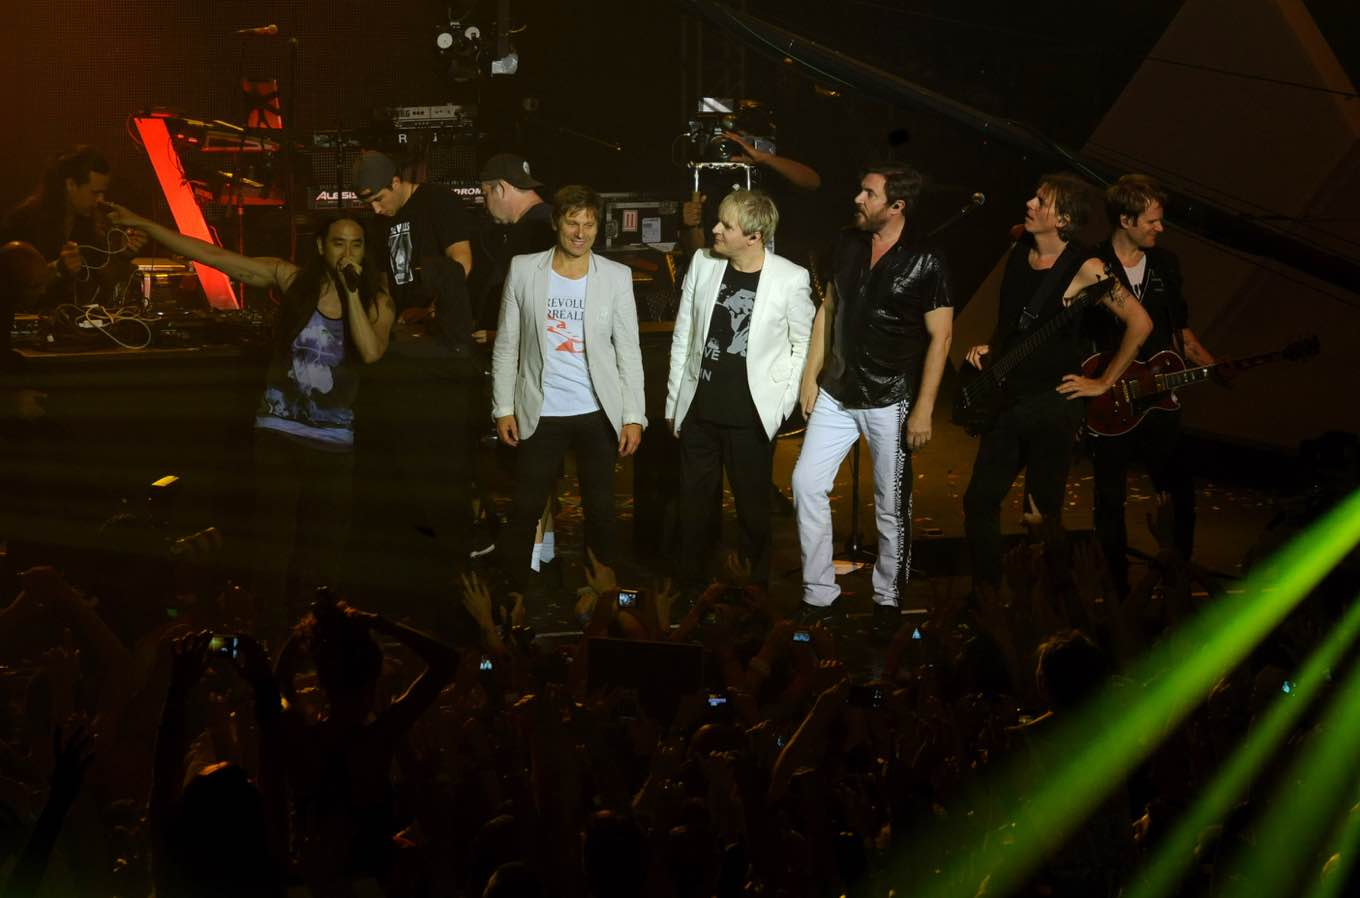 """Duran Duran and DJ Steve Aoki join forces for the first time to debut their remix """"Hungry Like The Wolf - NY Werewolf Mix"""" at Trident's """"See What Unfolds Live"""" event in New York, Wednesday, June 20, 2012. (Photo by Diane Bondareff/Invision for Trident)"""